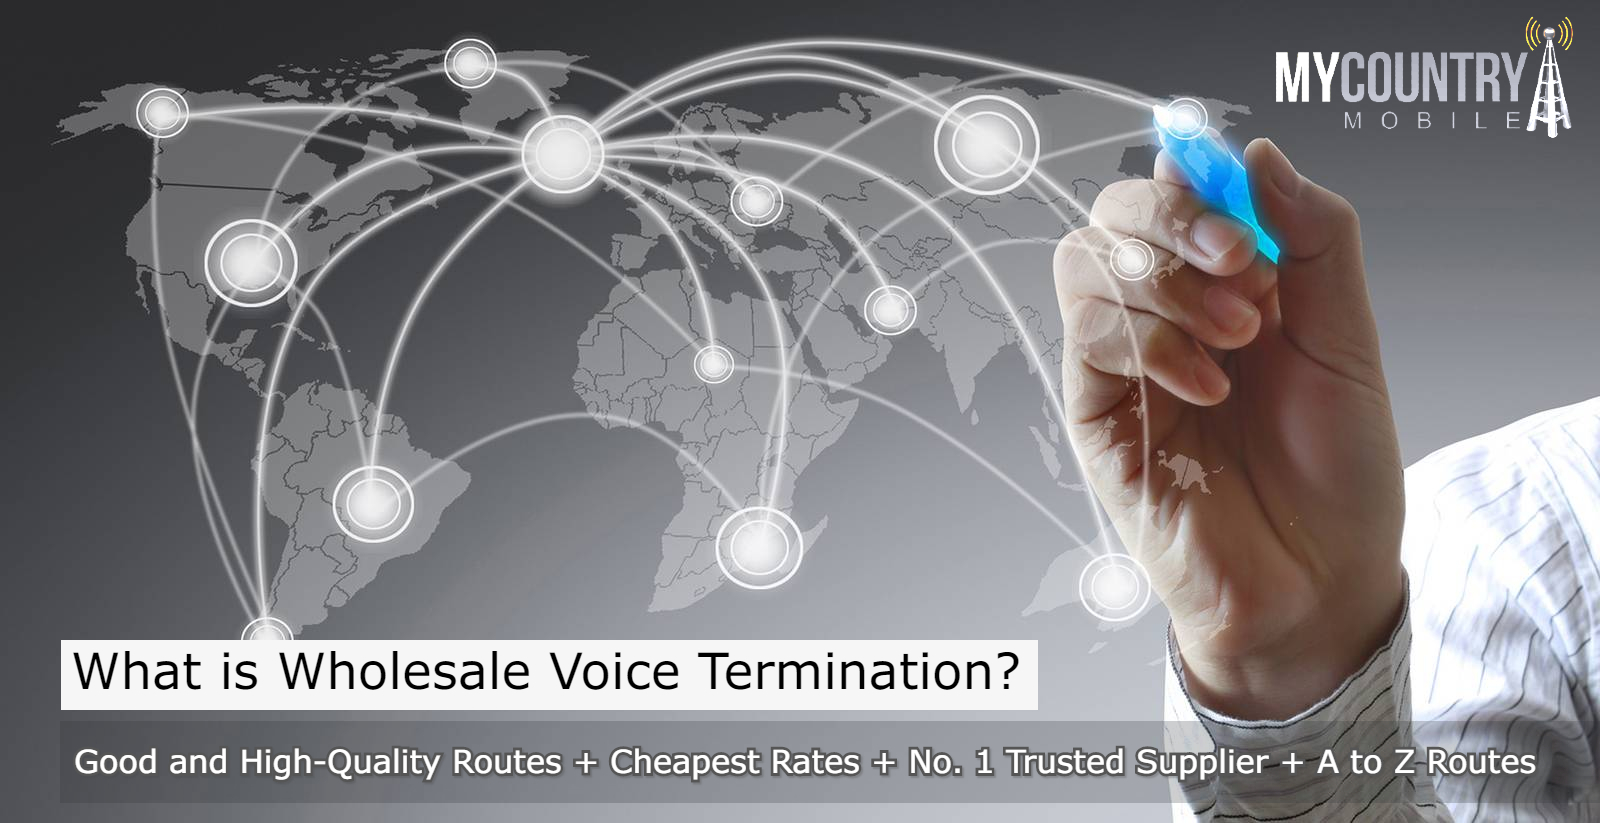 What is the wholesale voice termination